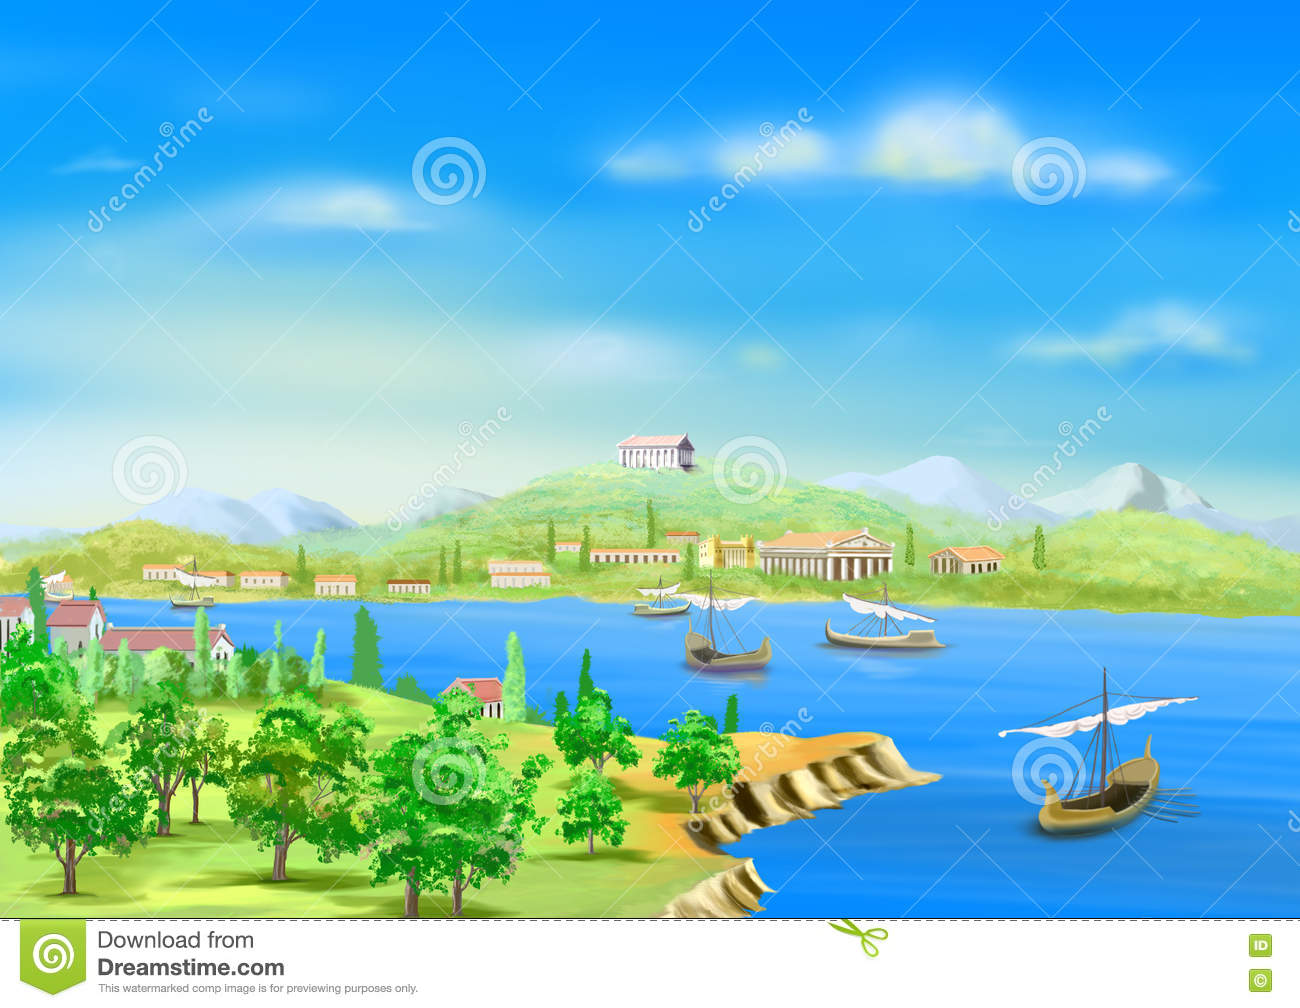 Nile river clipart vector free library Ancient City In Egypt, On The Banks Of The Nile River Stock ... vector free library